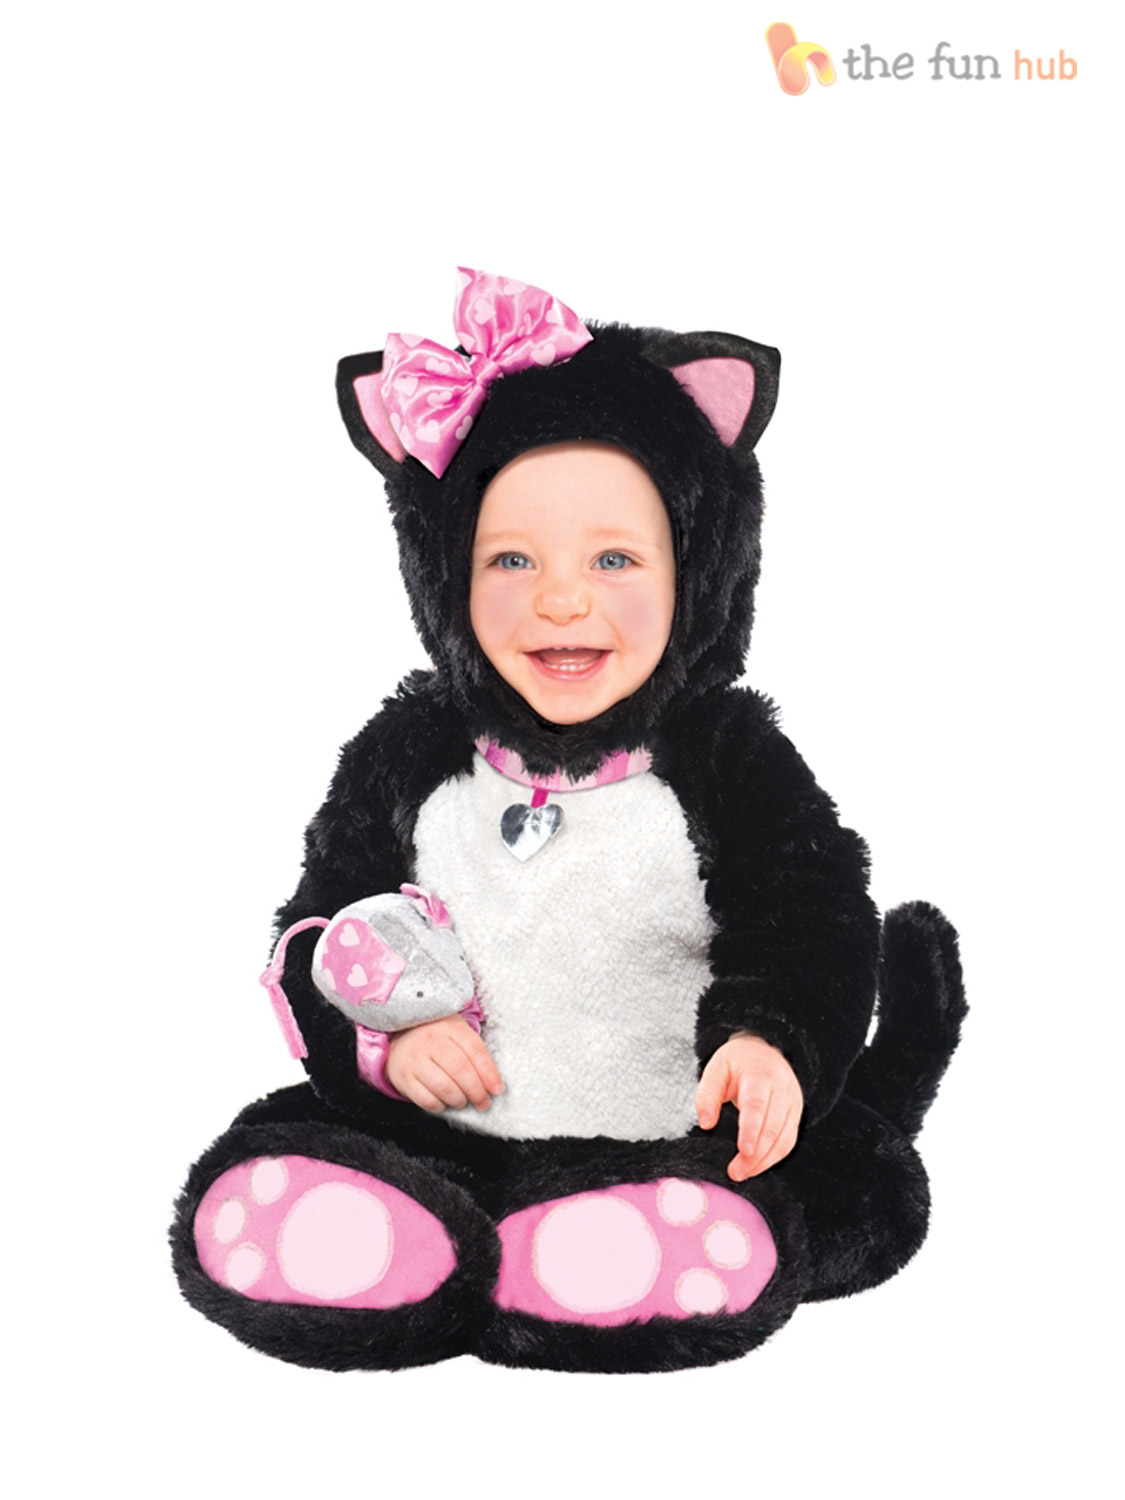 bebb858f7 Baby Toddler Cat Costume Girl Childs Animal Fancy Dress Itty Bitty ...